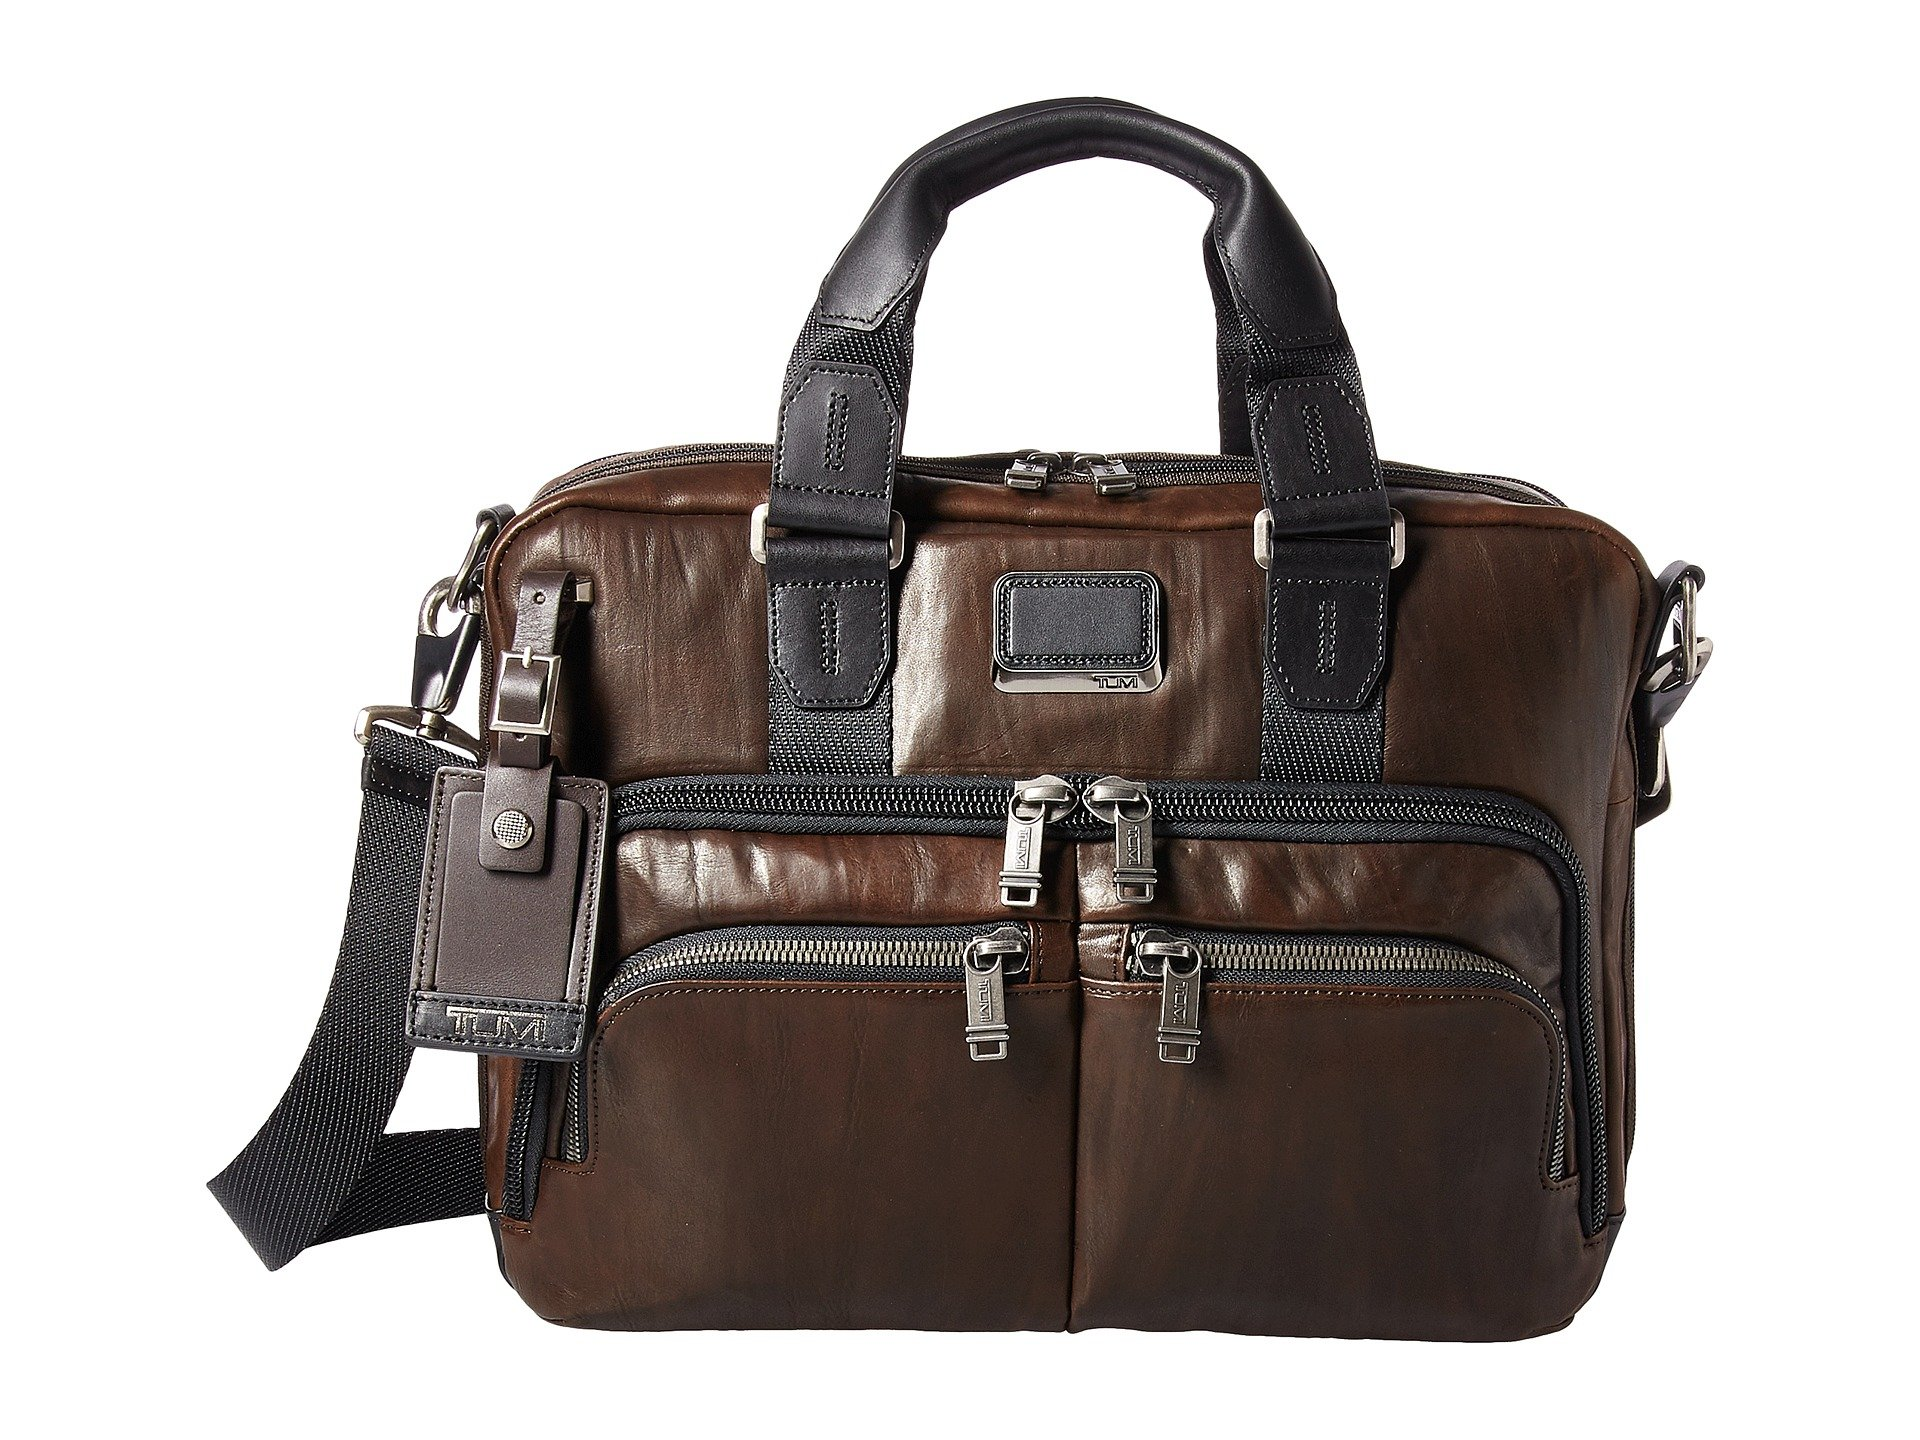 TUMI - Alpha Bravo Albany Leather Laptop Slim Commuter Brief Briefcase - 14 InchComputer Bag for Men and Women - Dark Brown by TUMI